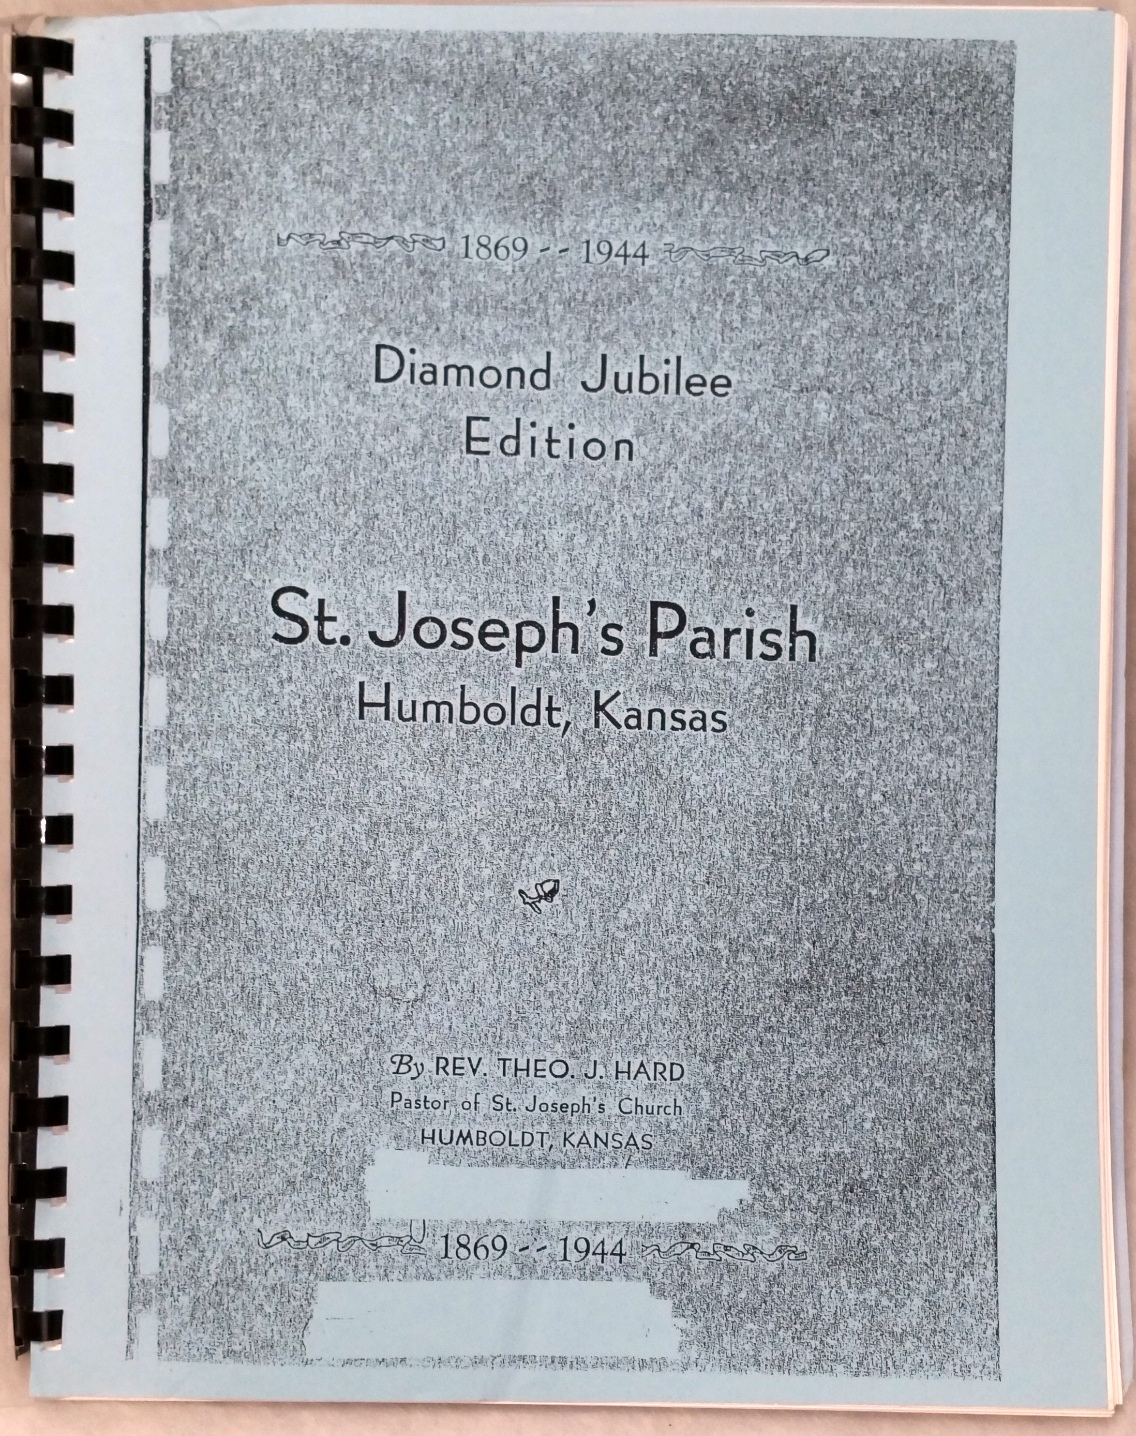 Image for 1869-1944, Diamond Jubilee Edition of St. Joseph's Parish, Humboldt, Kansas: A Condensed history of this Period as a Parish with Historical dates of the years Immediately Preceding While a station of the Old Osage Mission, Now St. Paul, Kansas